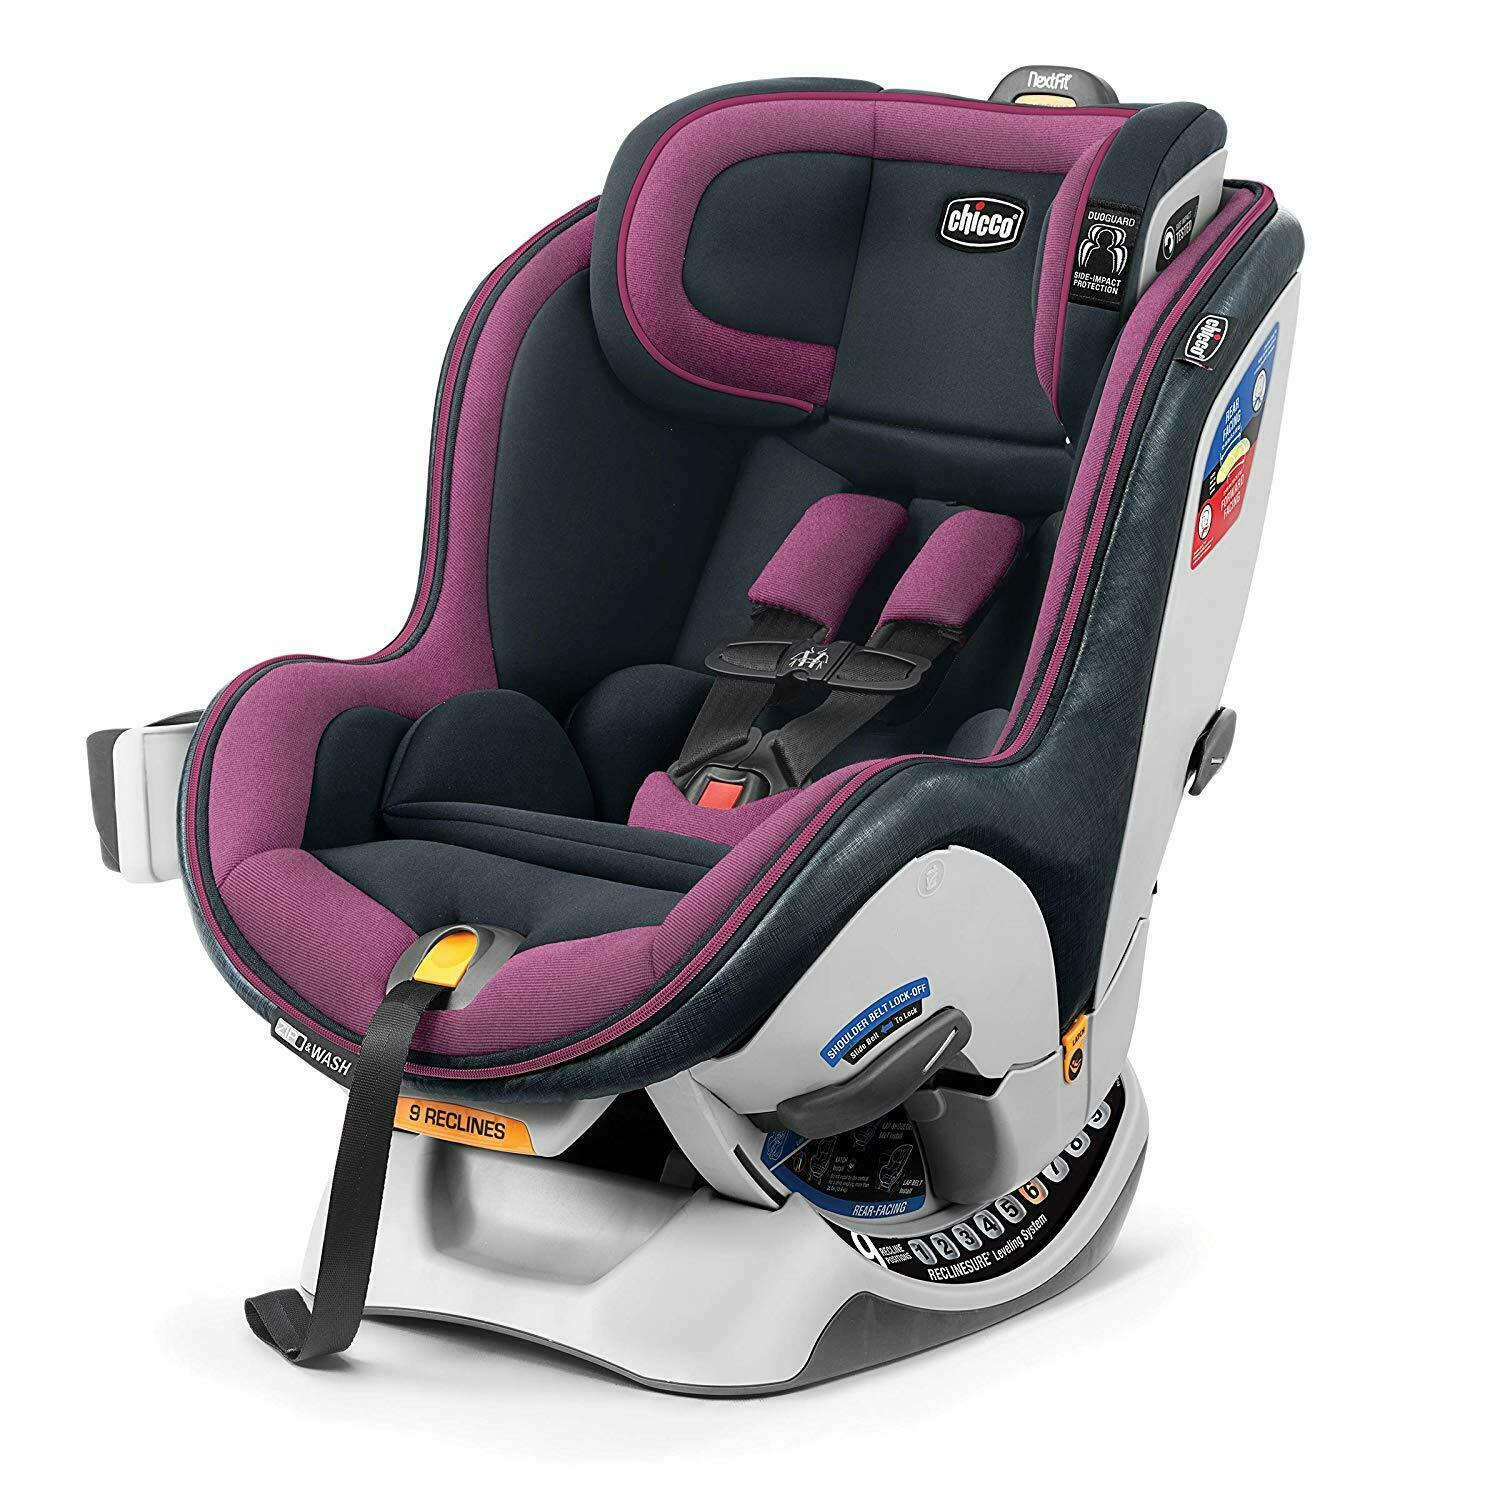 Chicco NextFit Zip Convertible Car Seat in Vivaci